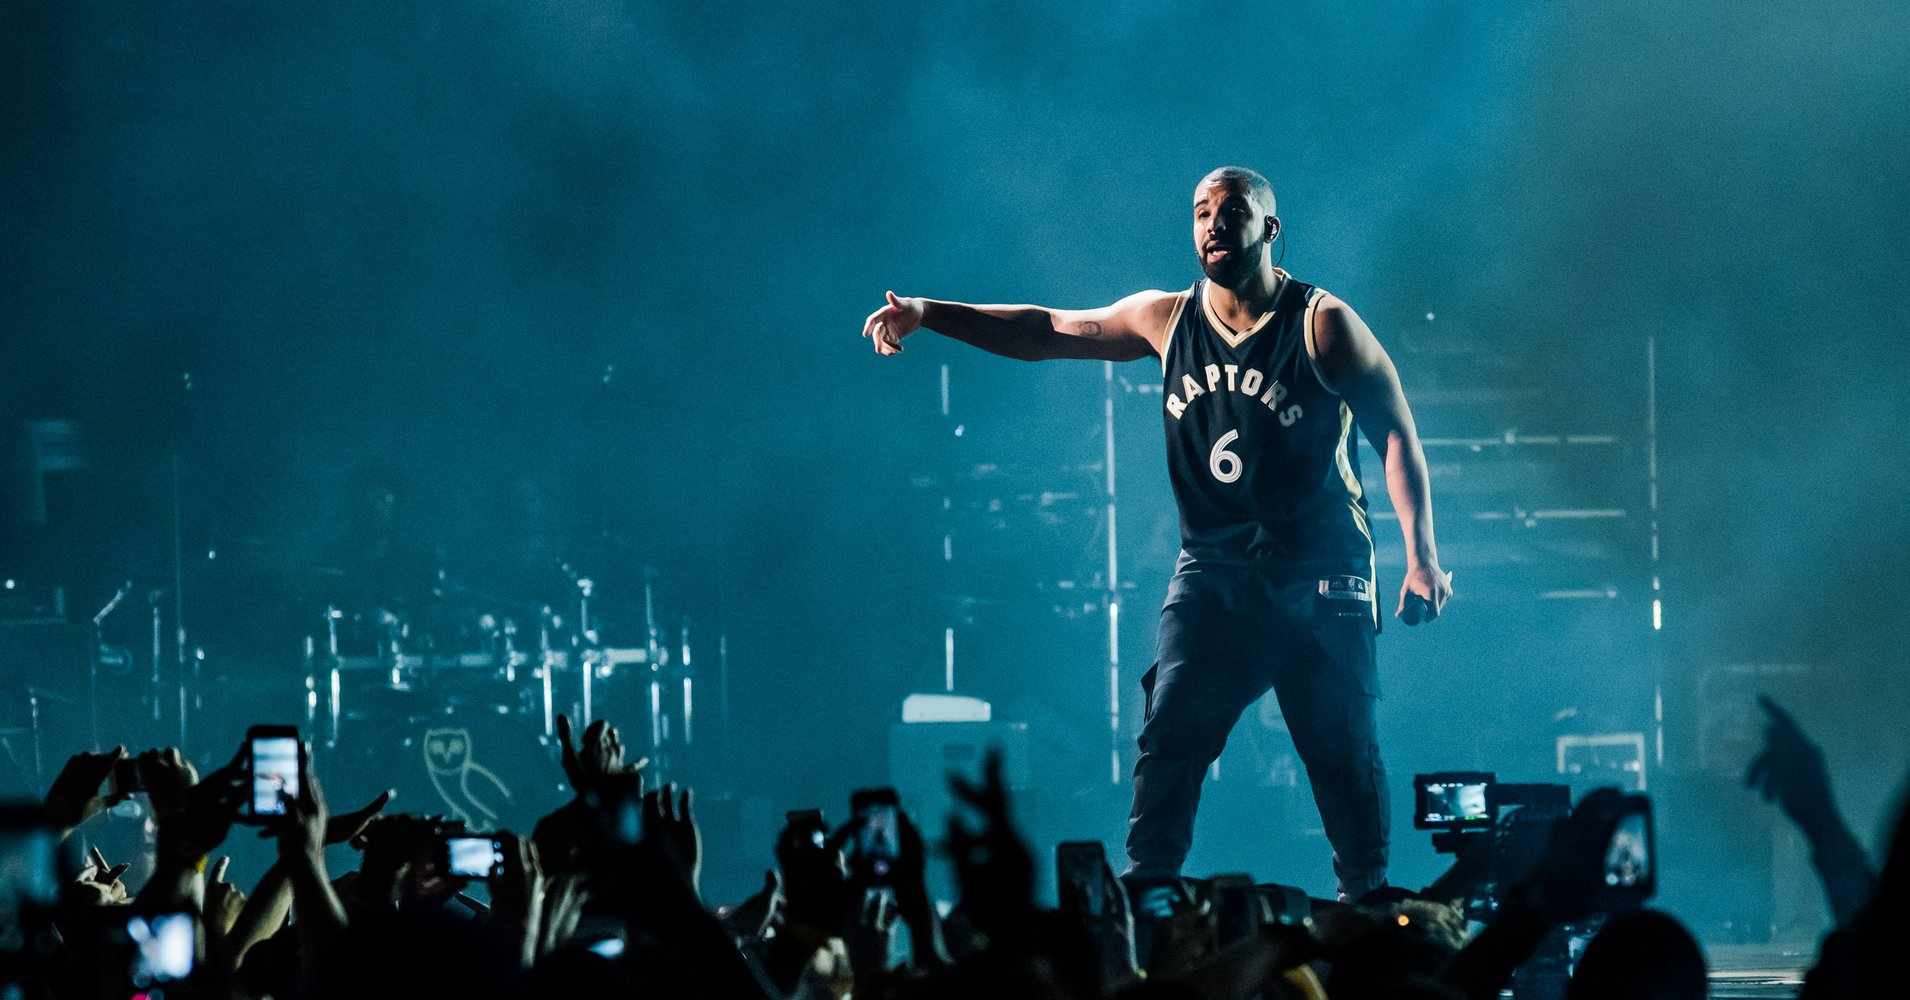 drake concert world music paper 2 Drake in concert drake is known for his high-energy shows that should be on every music fan's bucket list catch drake in concert with fellow rappers migos during the aubrey & the three amigos tour.